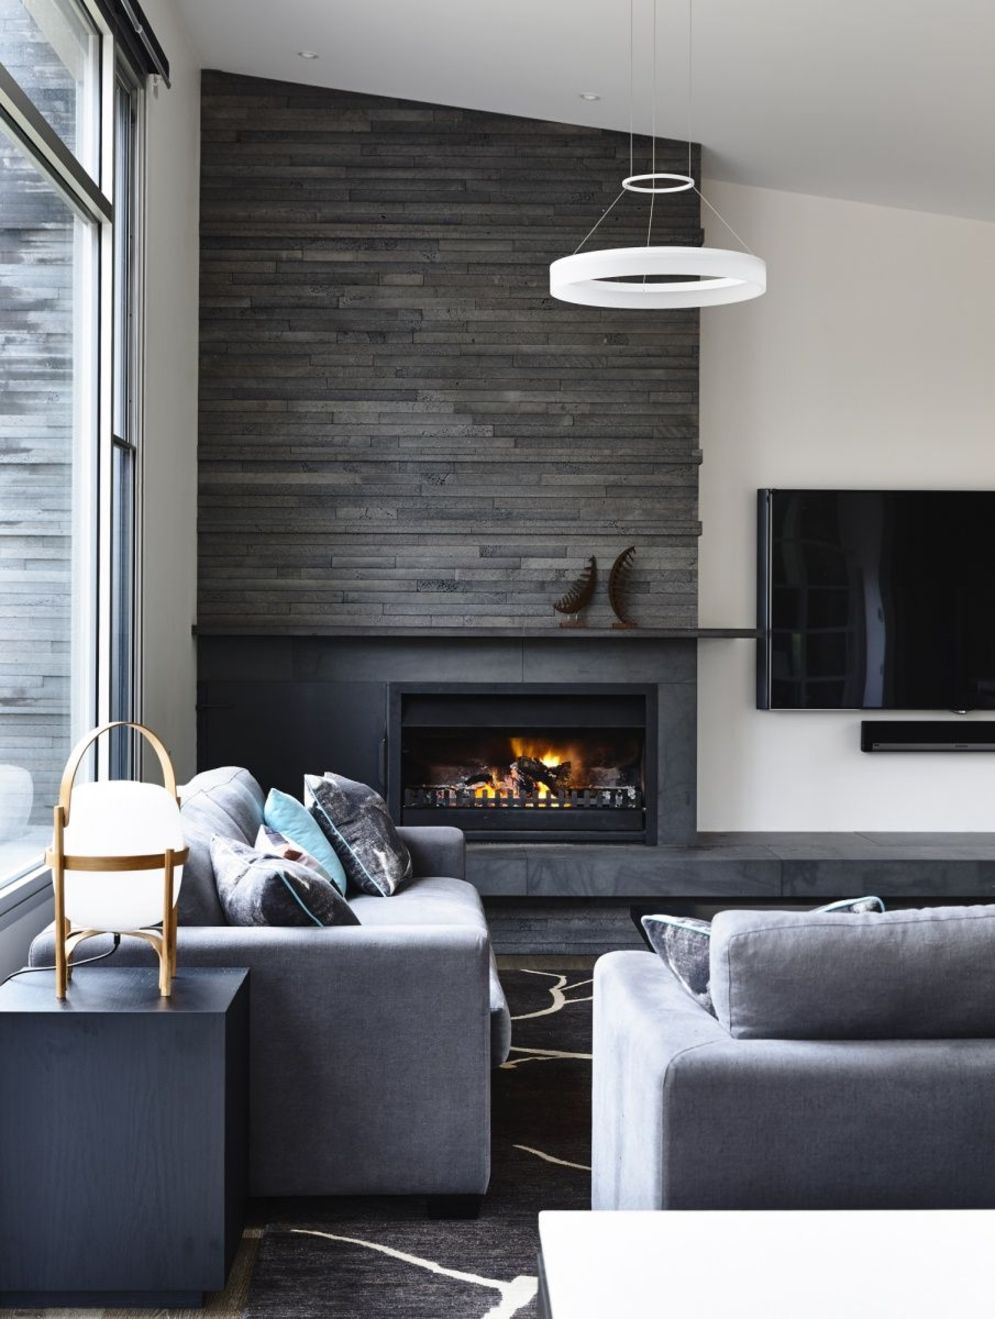 Amazing interior design showing enclosed log burning fireplace along with savvy TV wall Image 1